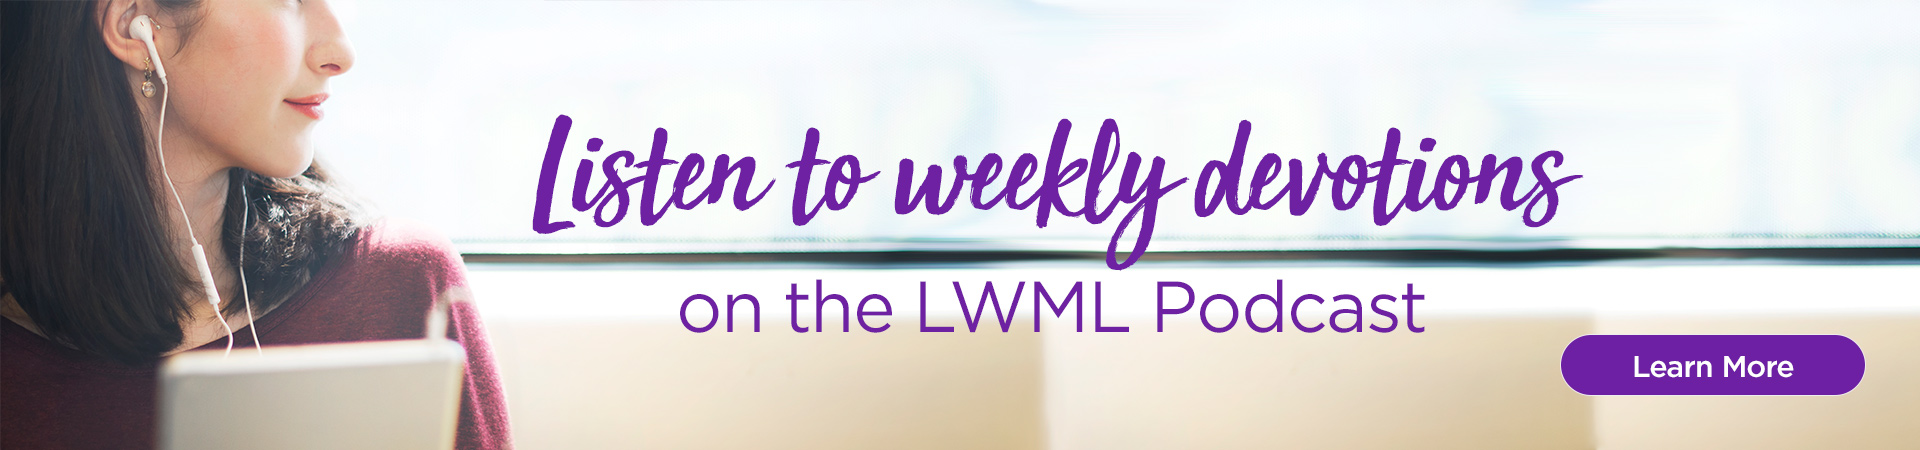 Listen to weekly devotions on the LWML Podcast.